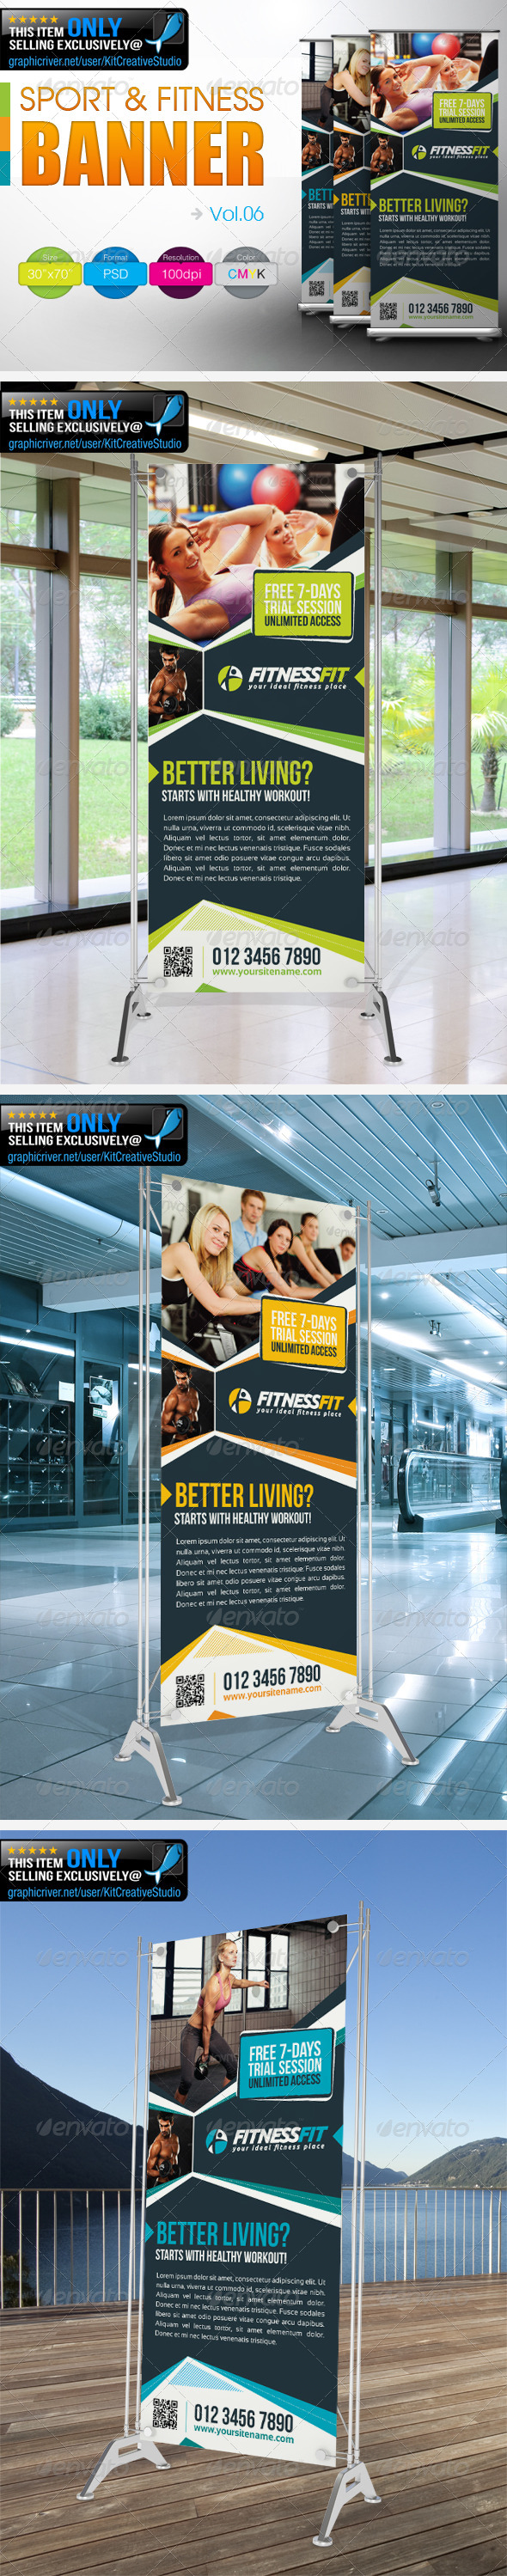 Fitness Banner Vol.6 - Signage Print Templates